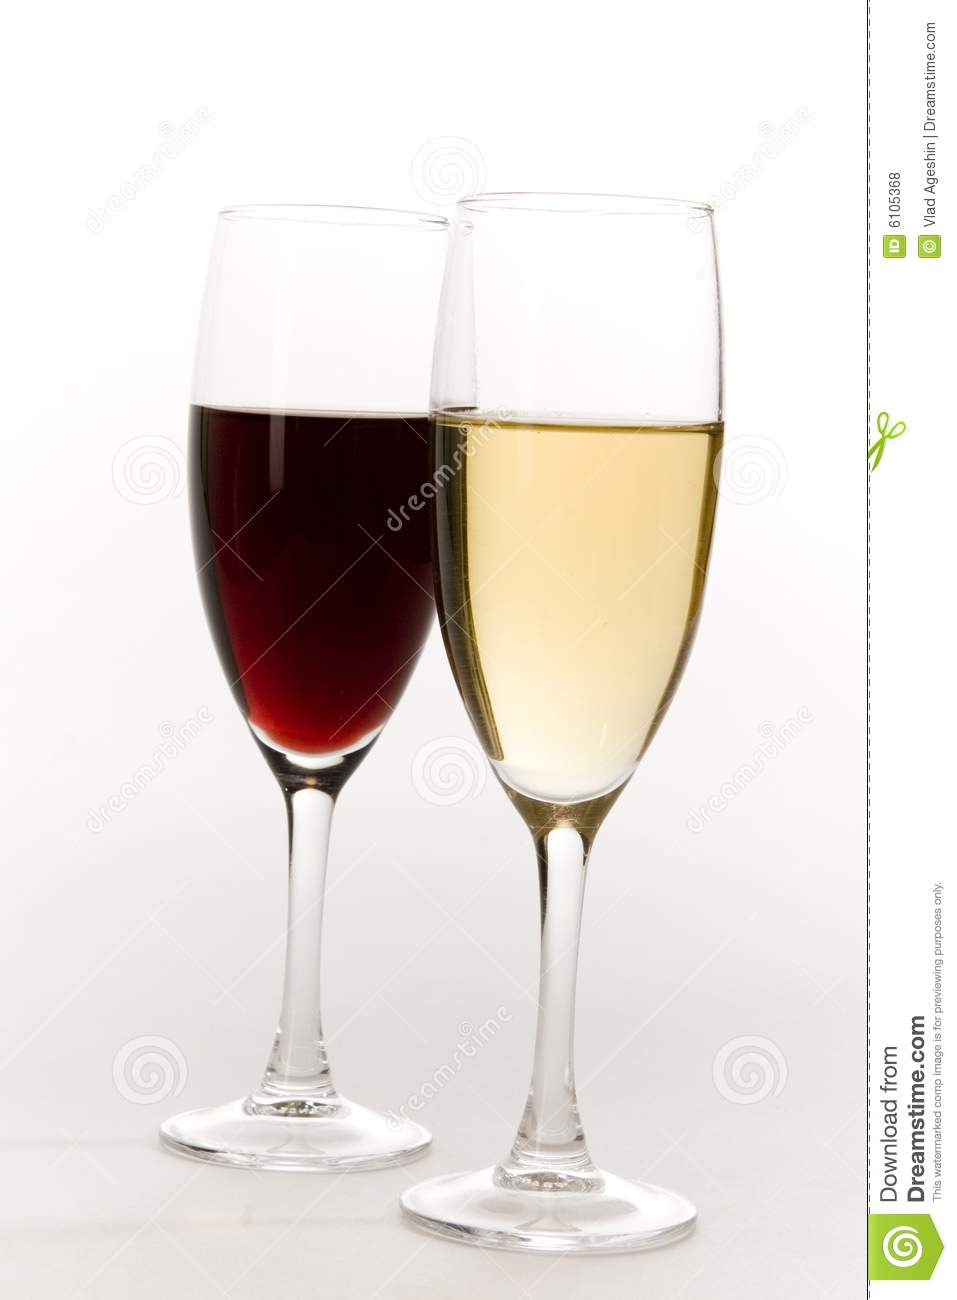 Glasses Of Red And White Wine Royalty Free Stock Photos ...